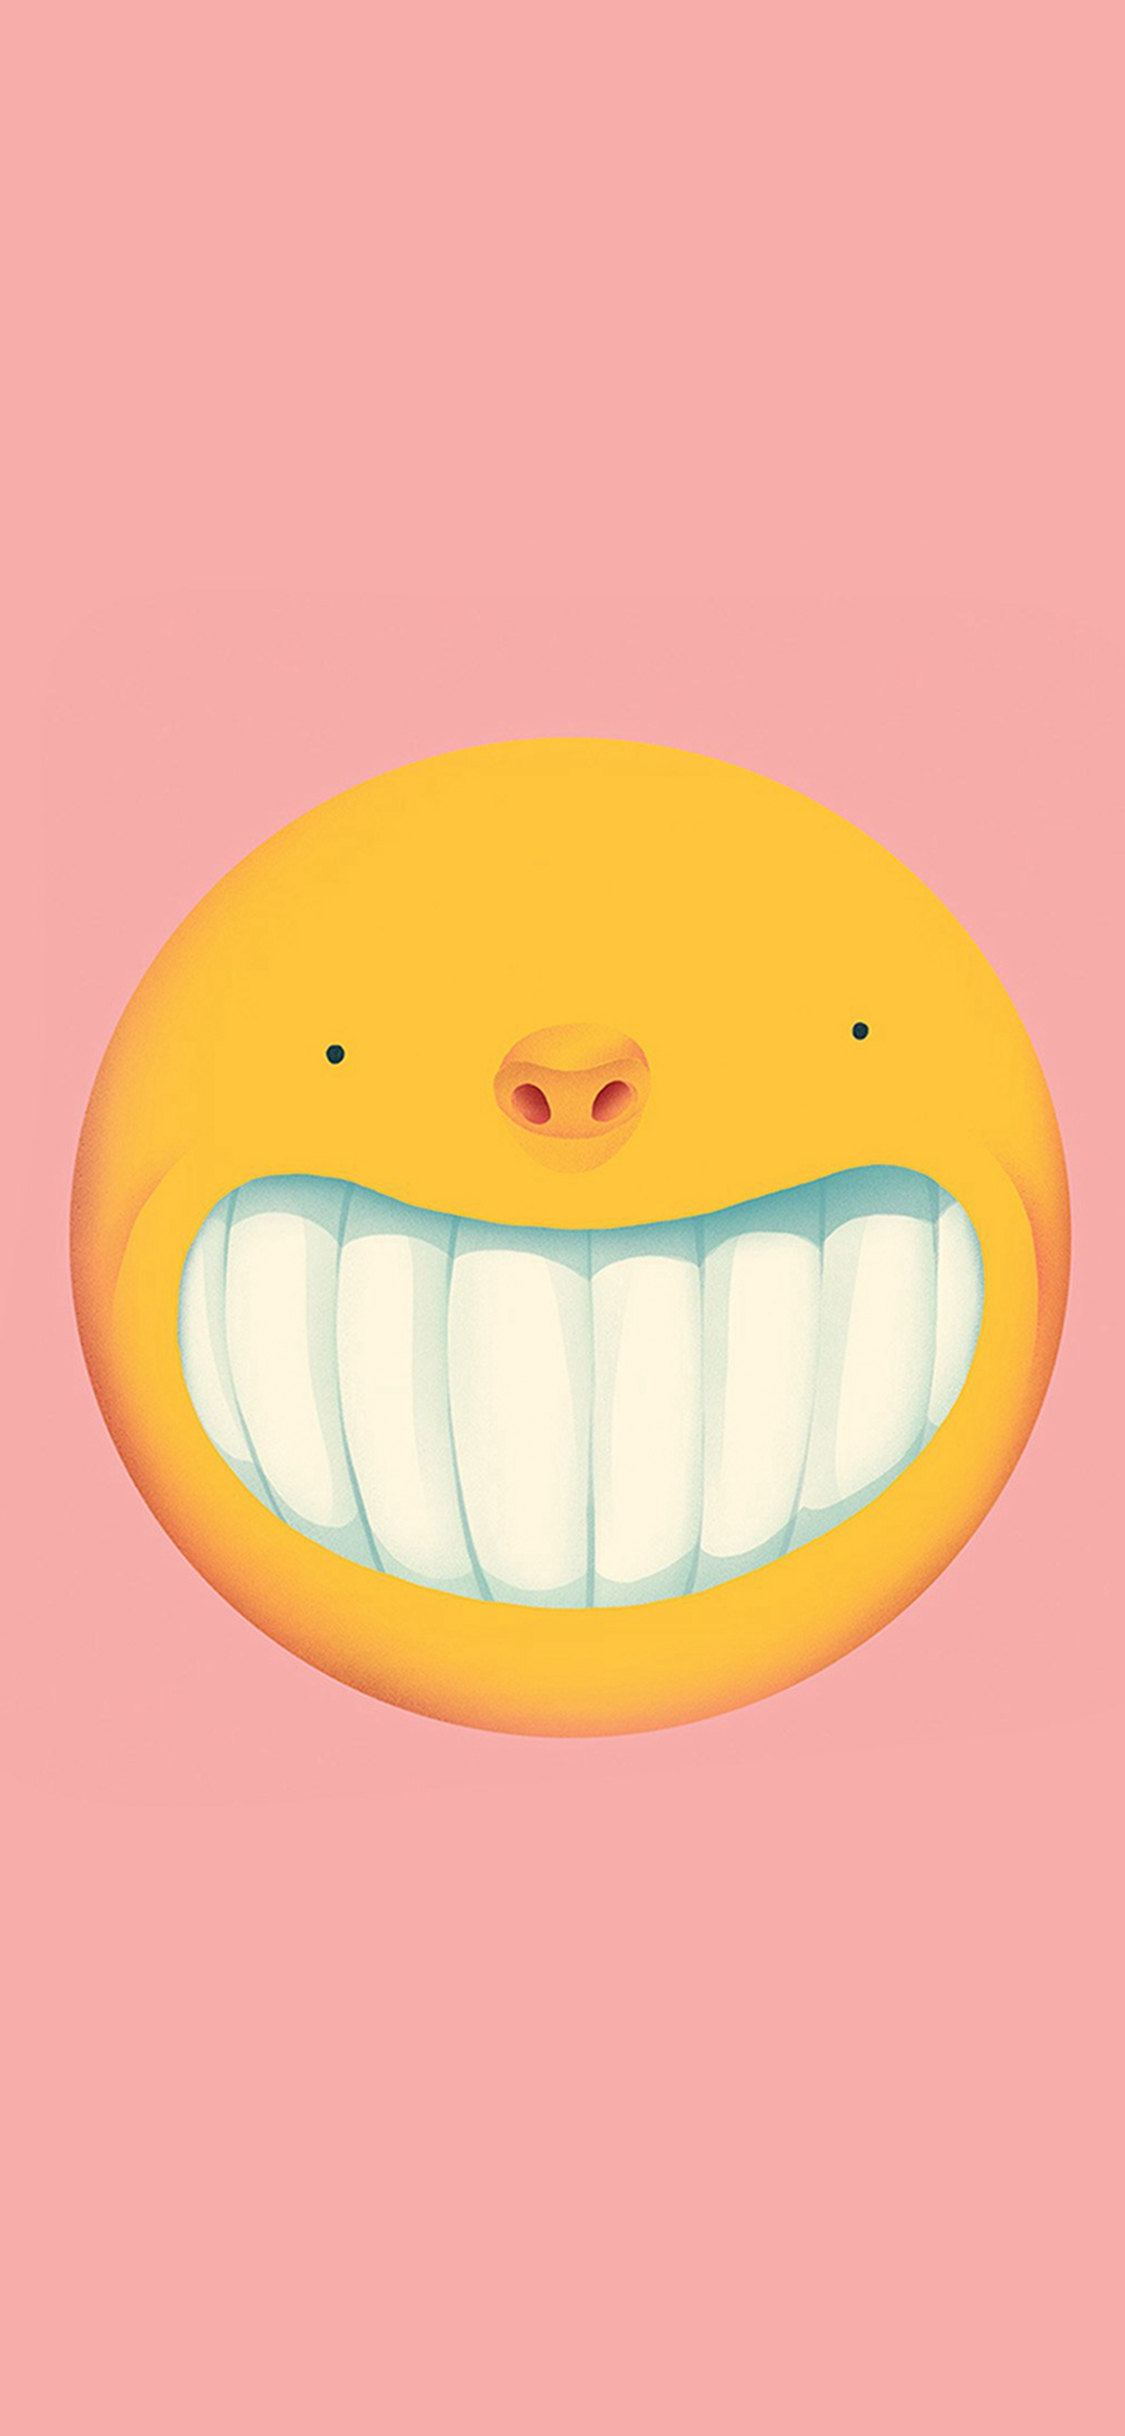 Smile Love Pink Cute Illustration Art Iphone X Wallpapers